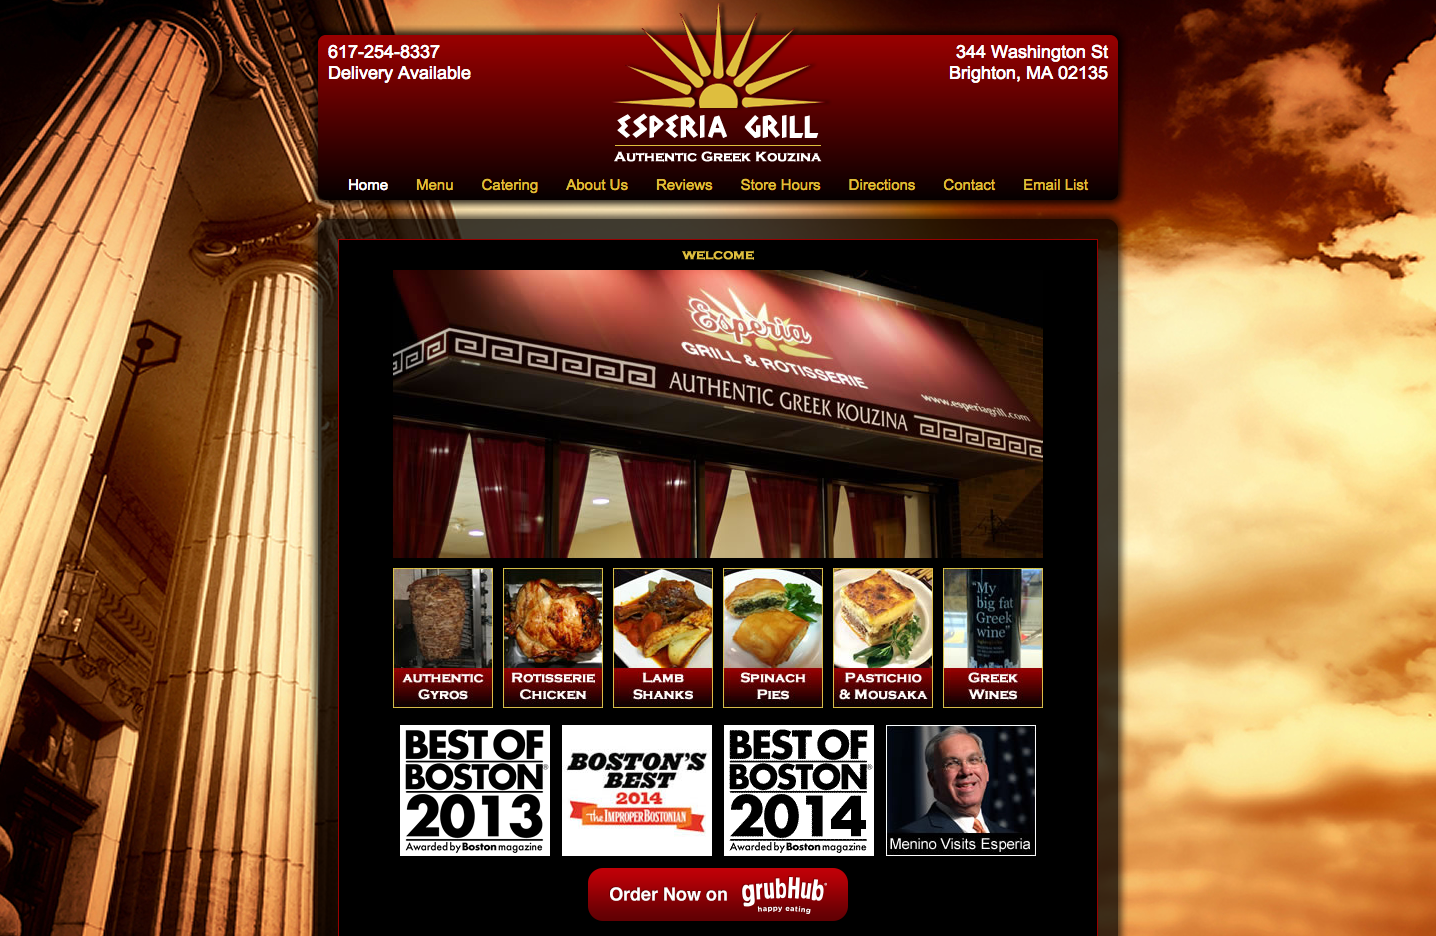 Perry Web Creations - Portfolio Item - Esperia Grill